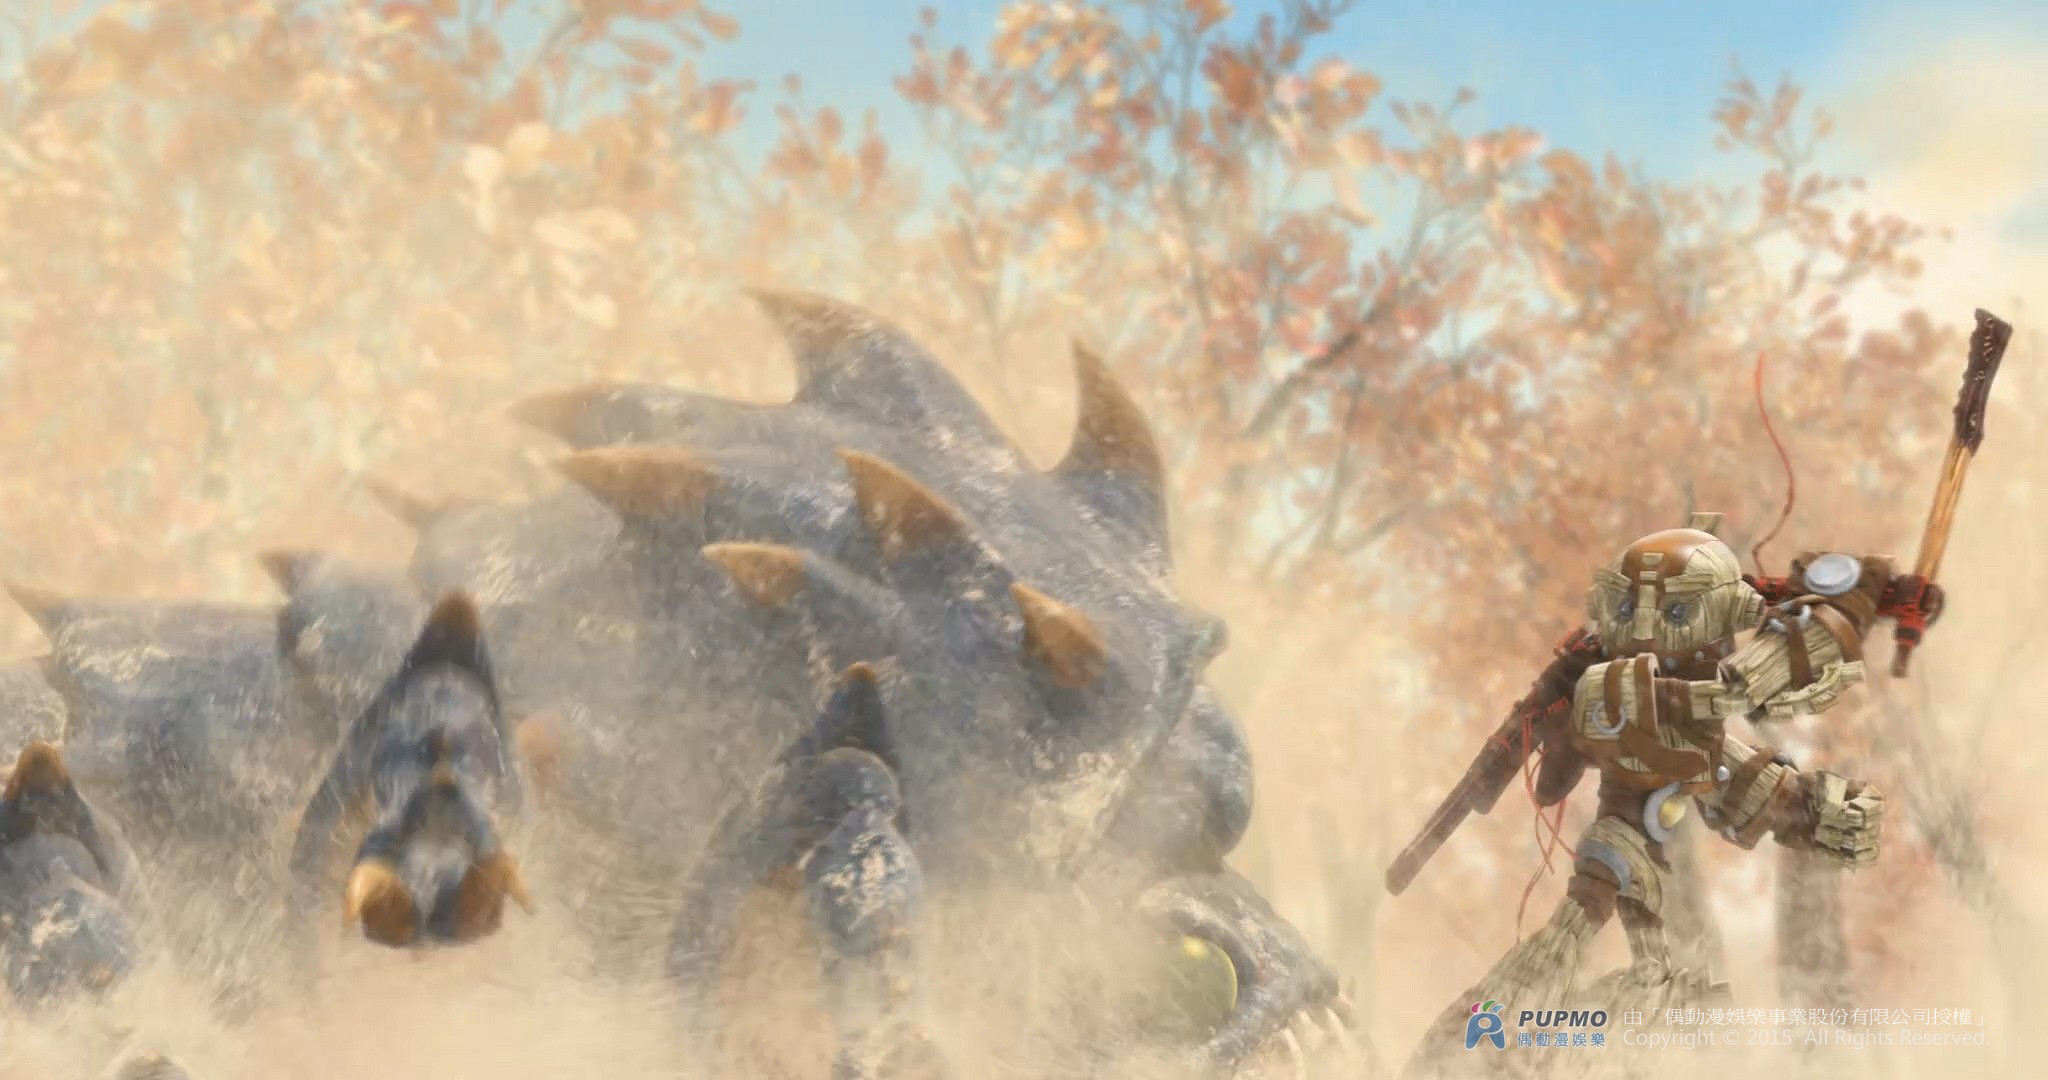 Movie - The Arti : The Adventure Begins - CGI & VFX : sand worm and the Arti. Click to view large image.